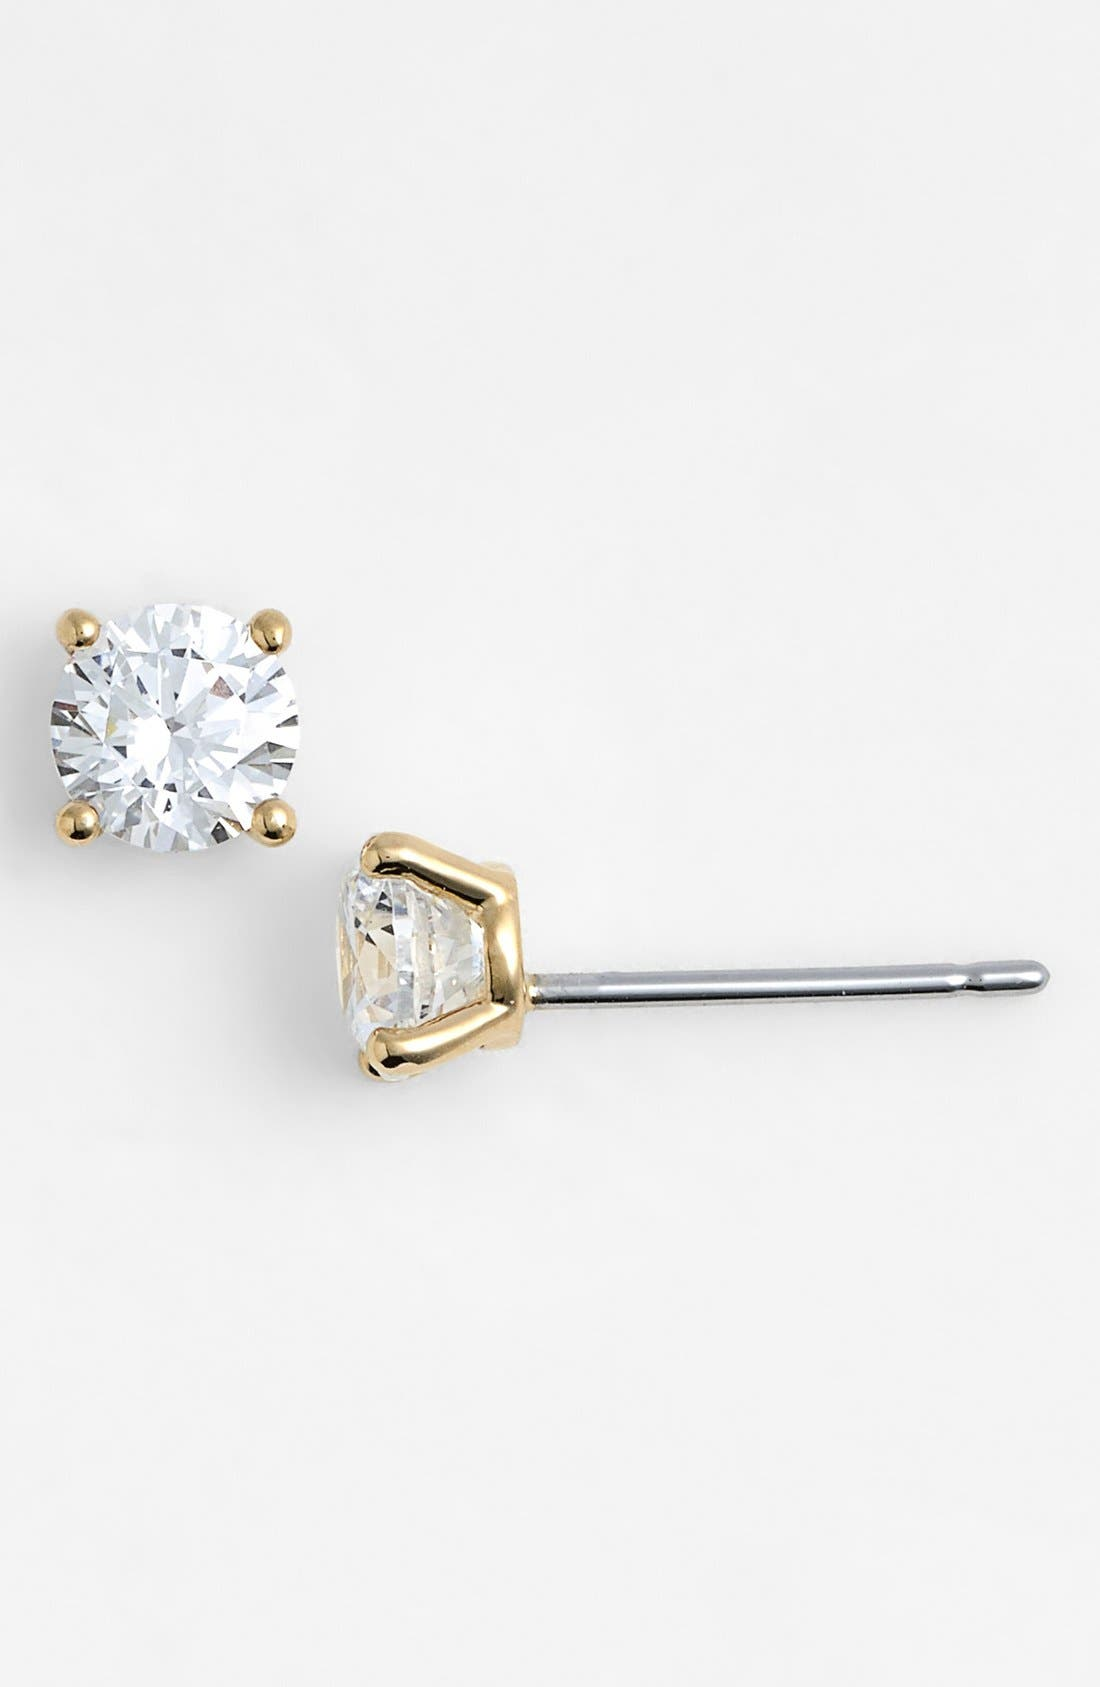 NADRI Small Cubic Zirconia Stud Earrings